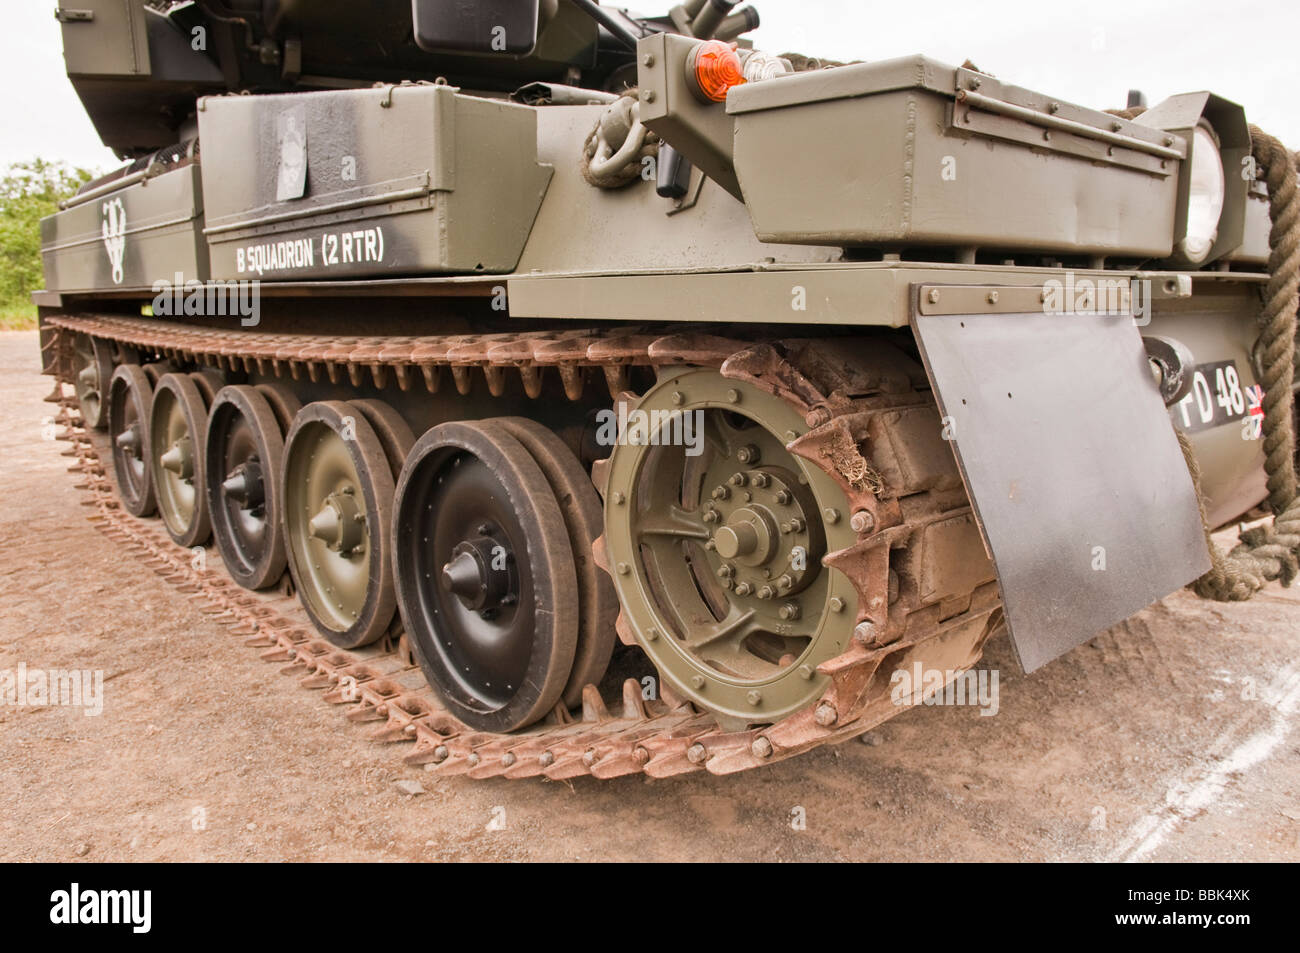 Tracks on a British Army Sabre tank, used in active service between 1995 and 2004 - Stock Image